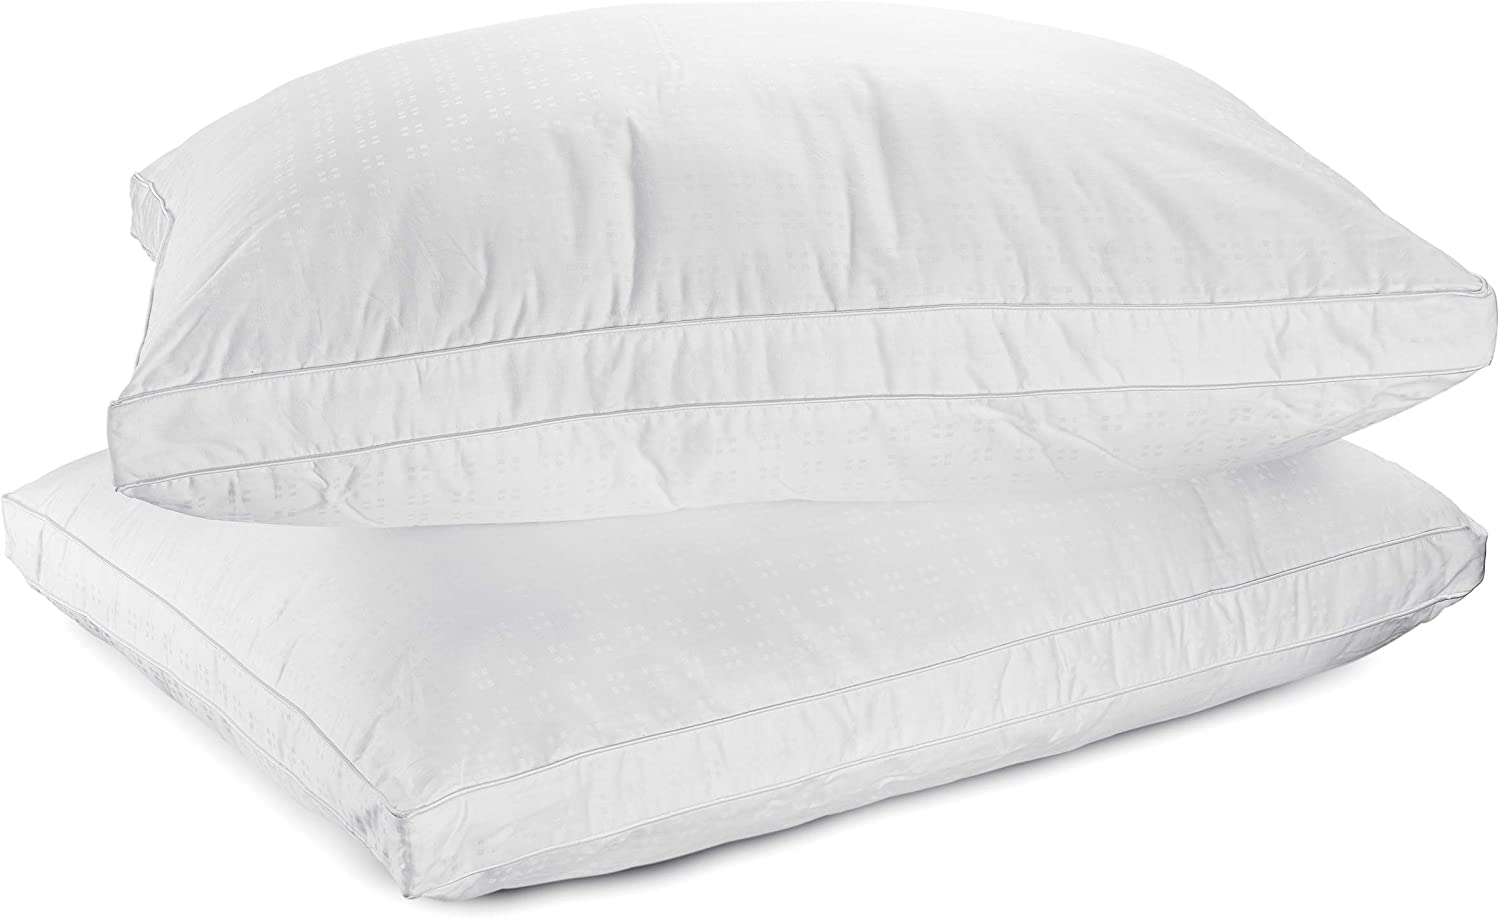 100% Cotton Mastertex Down Alternative Bed Pillows for side sleepers review. Best pillow for allergic person.